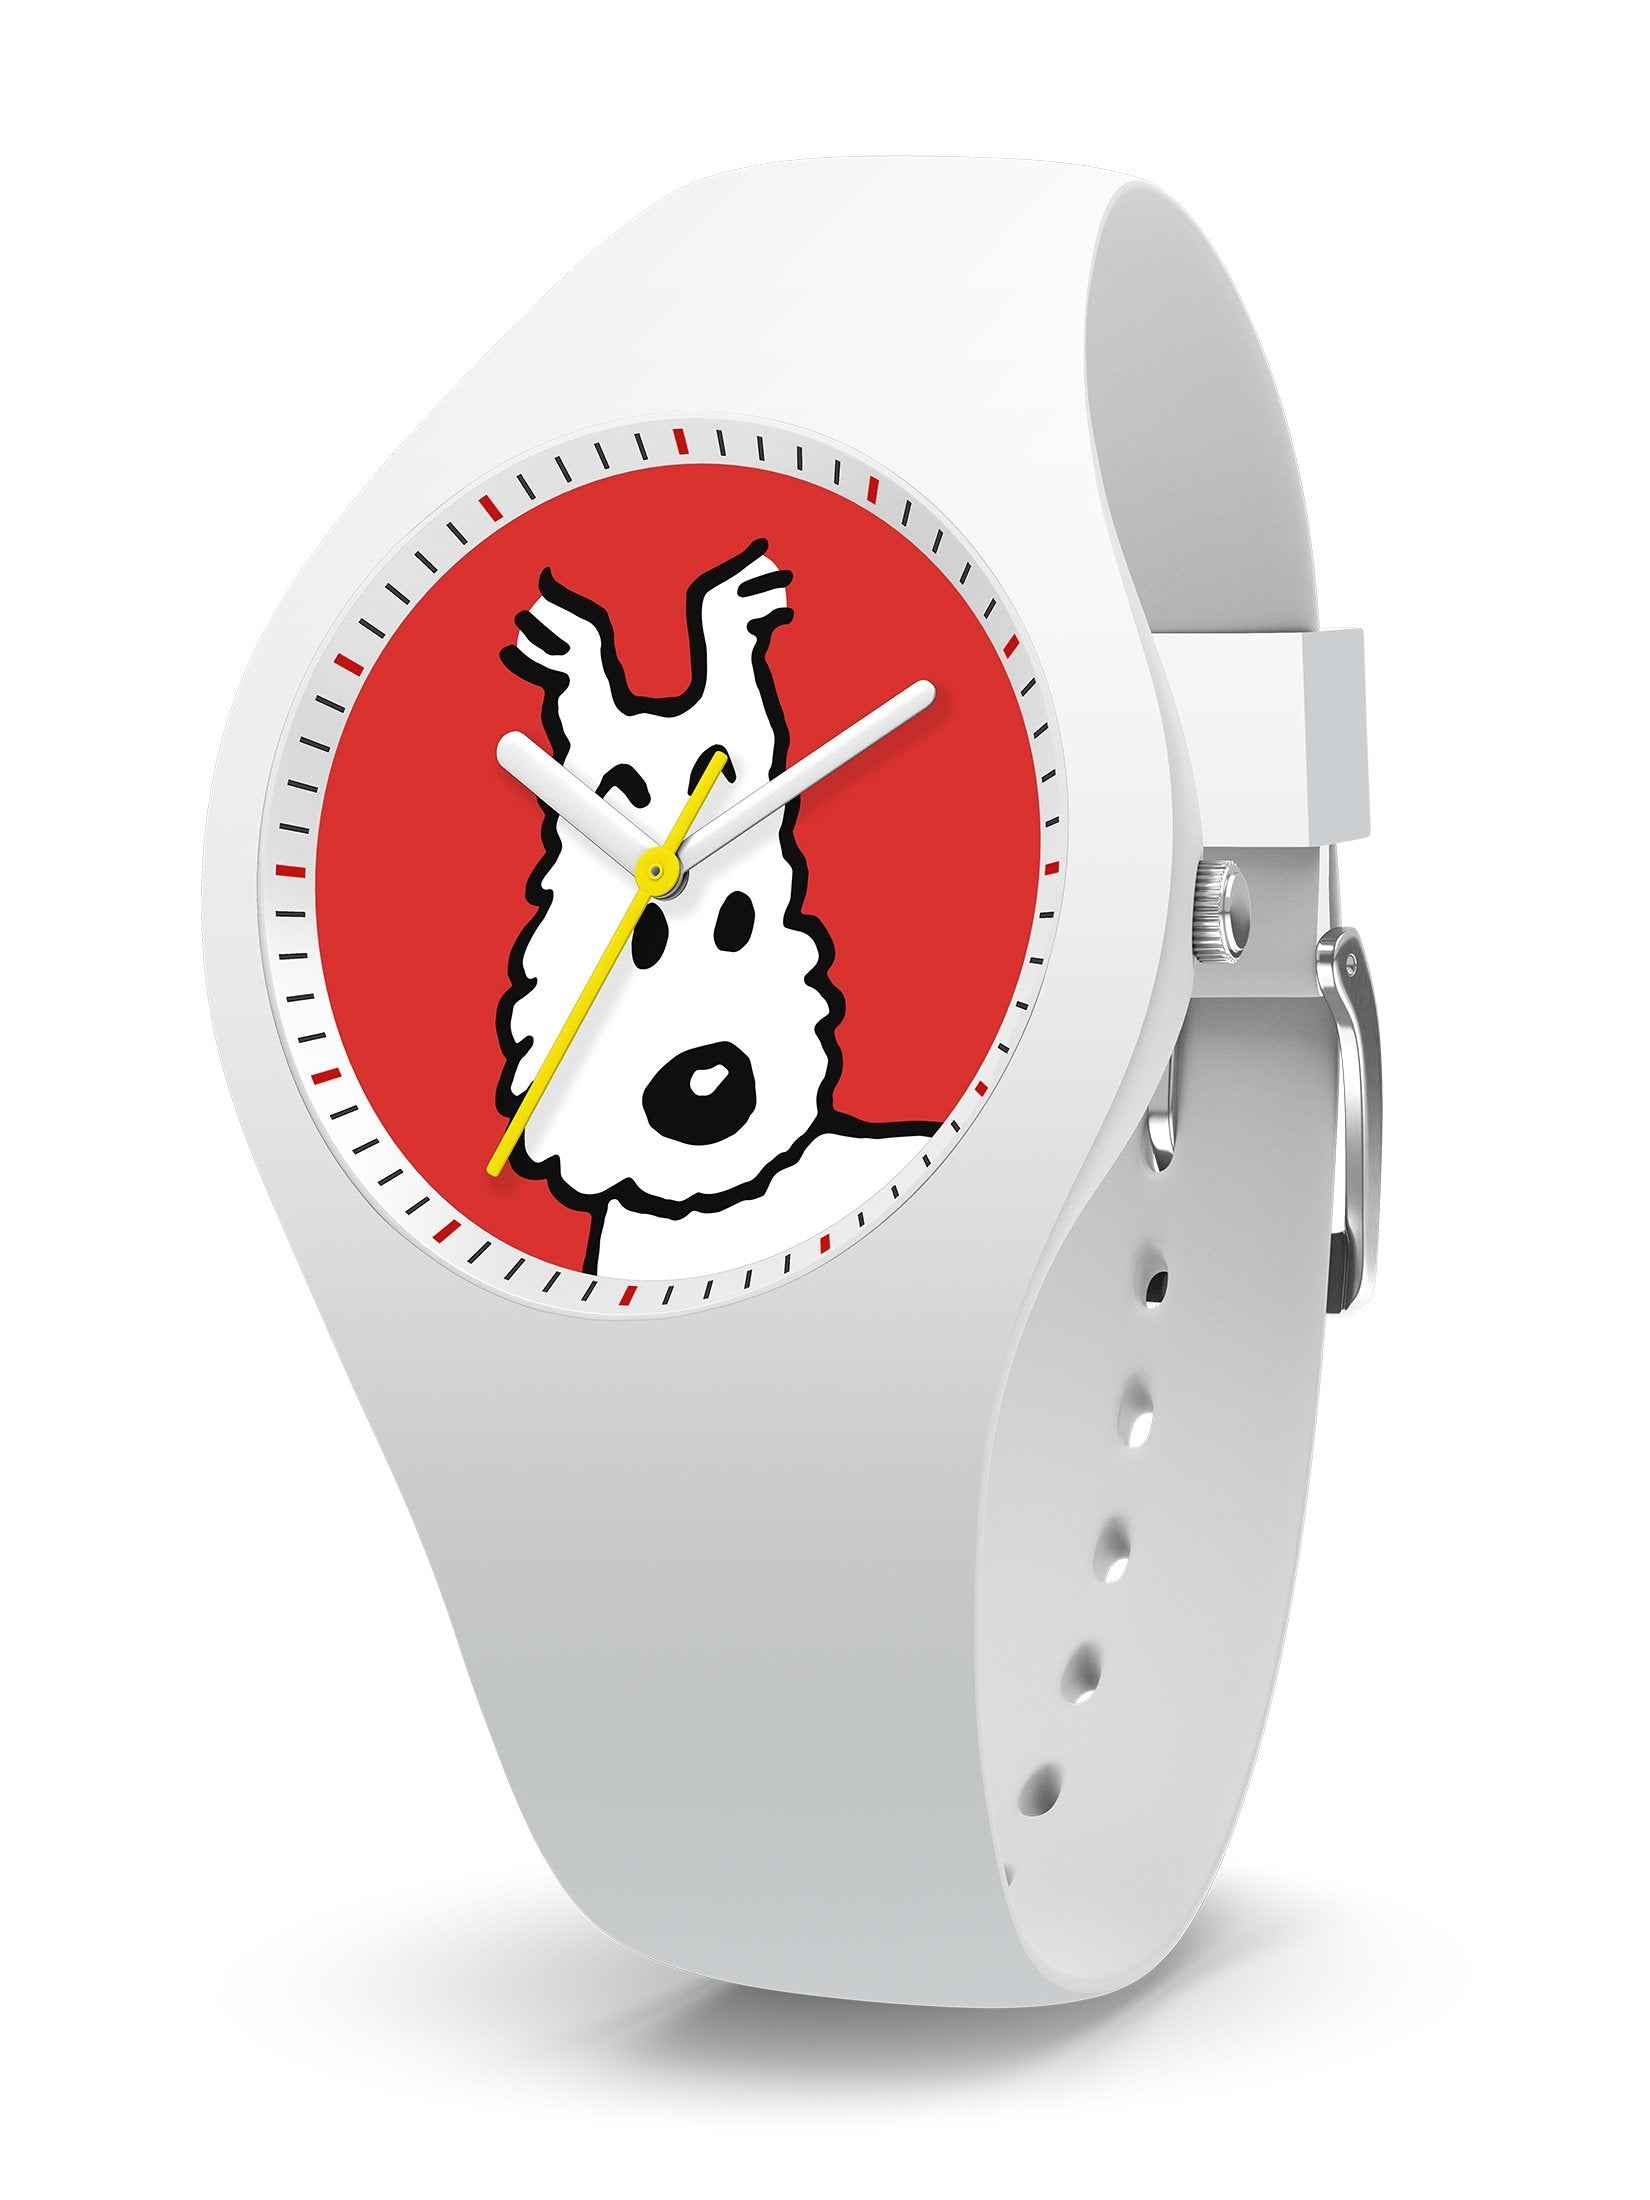 TINTIN WATCH - CHARACTERS SNOWY S